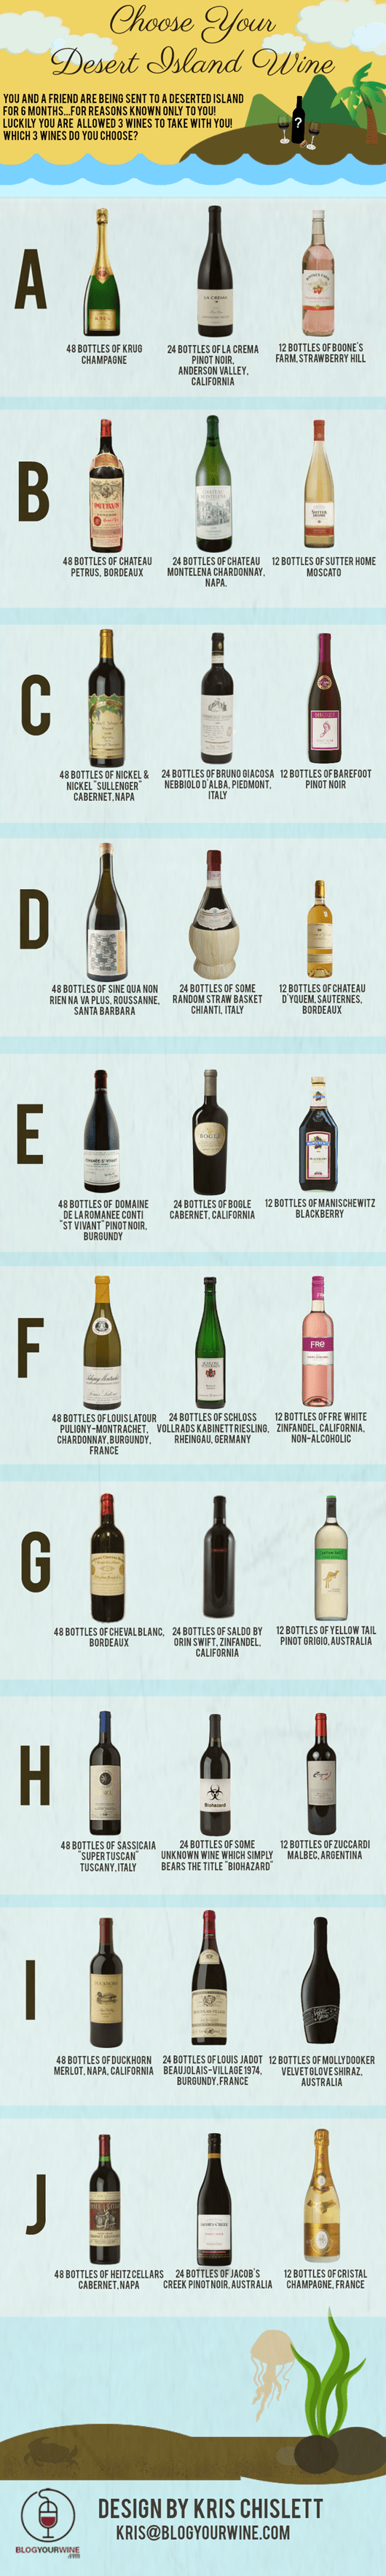 Choose Your Desert Island Wine!